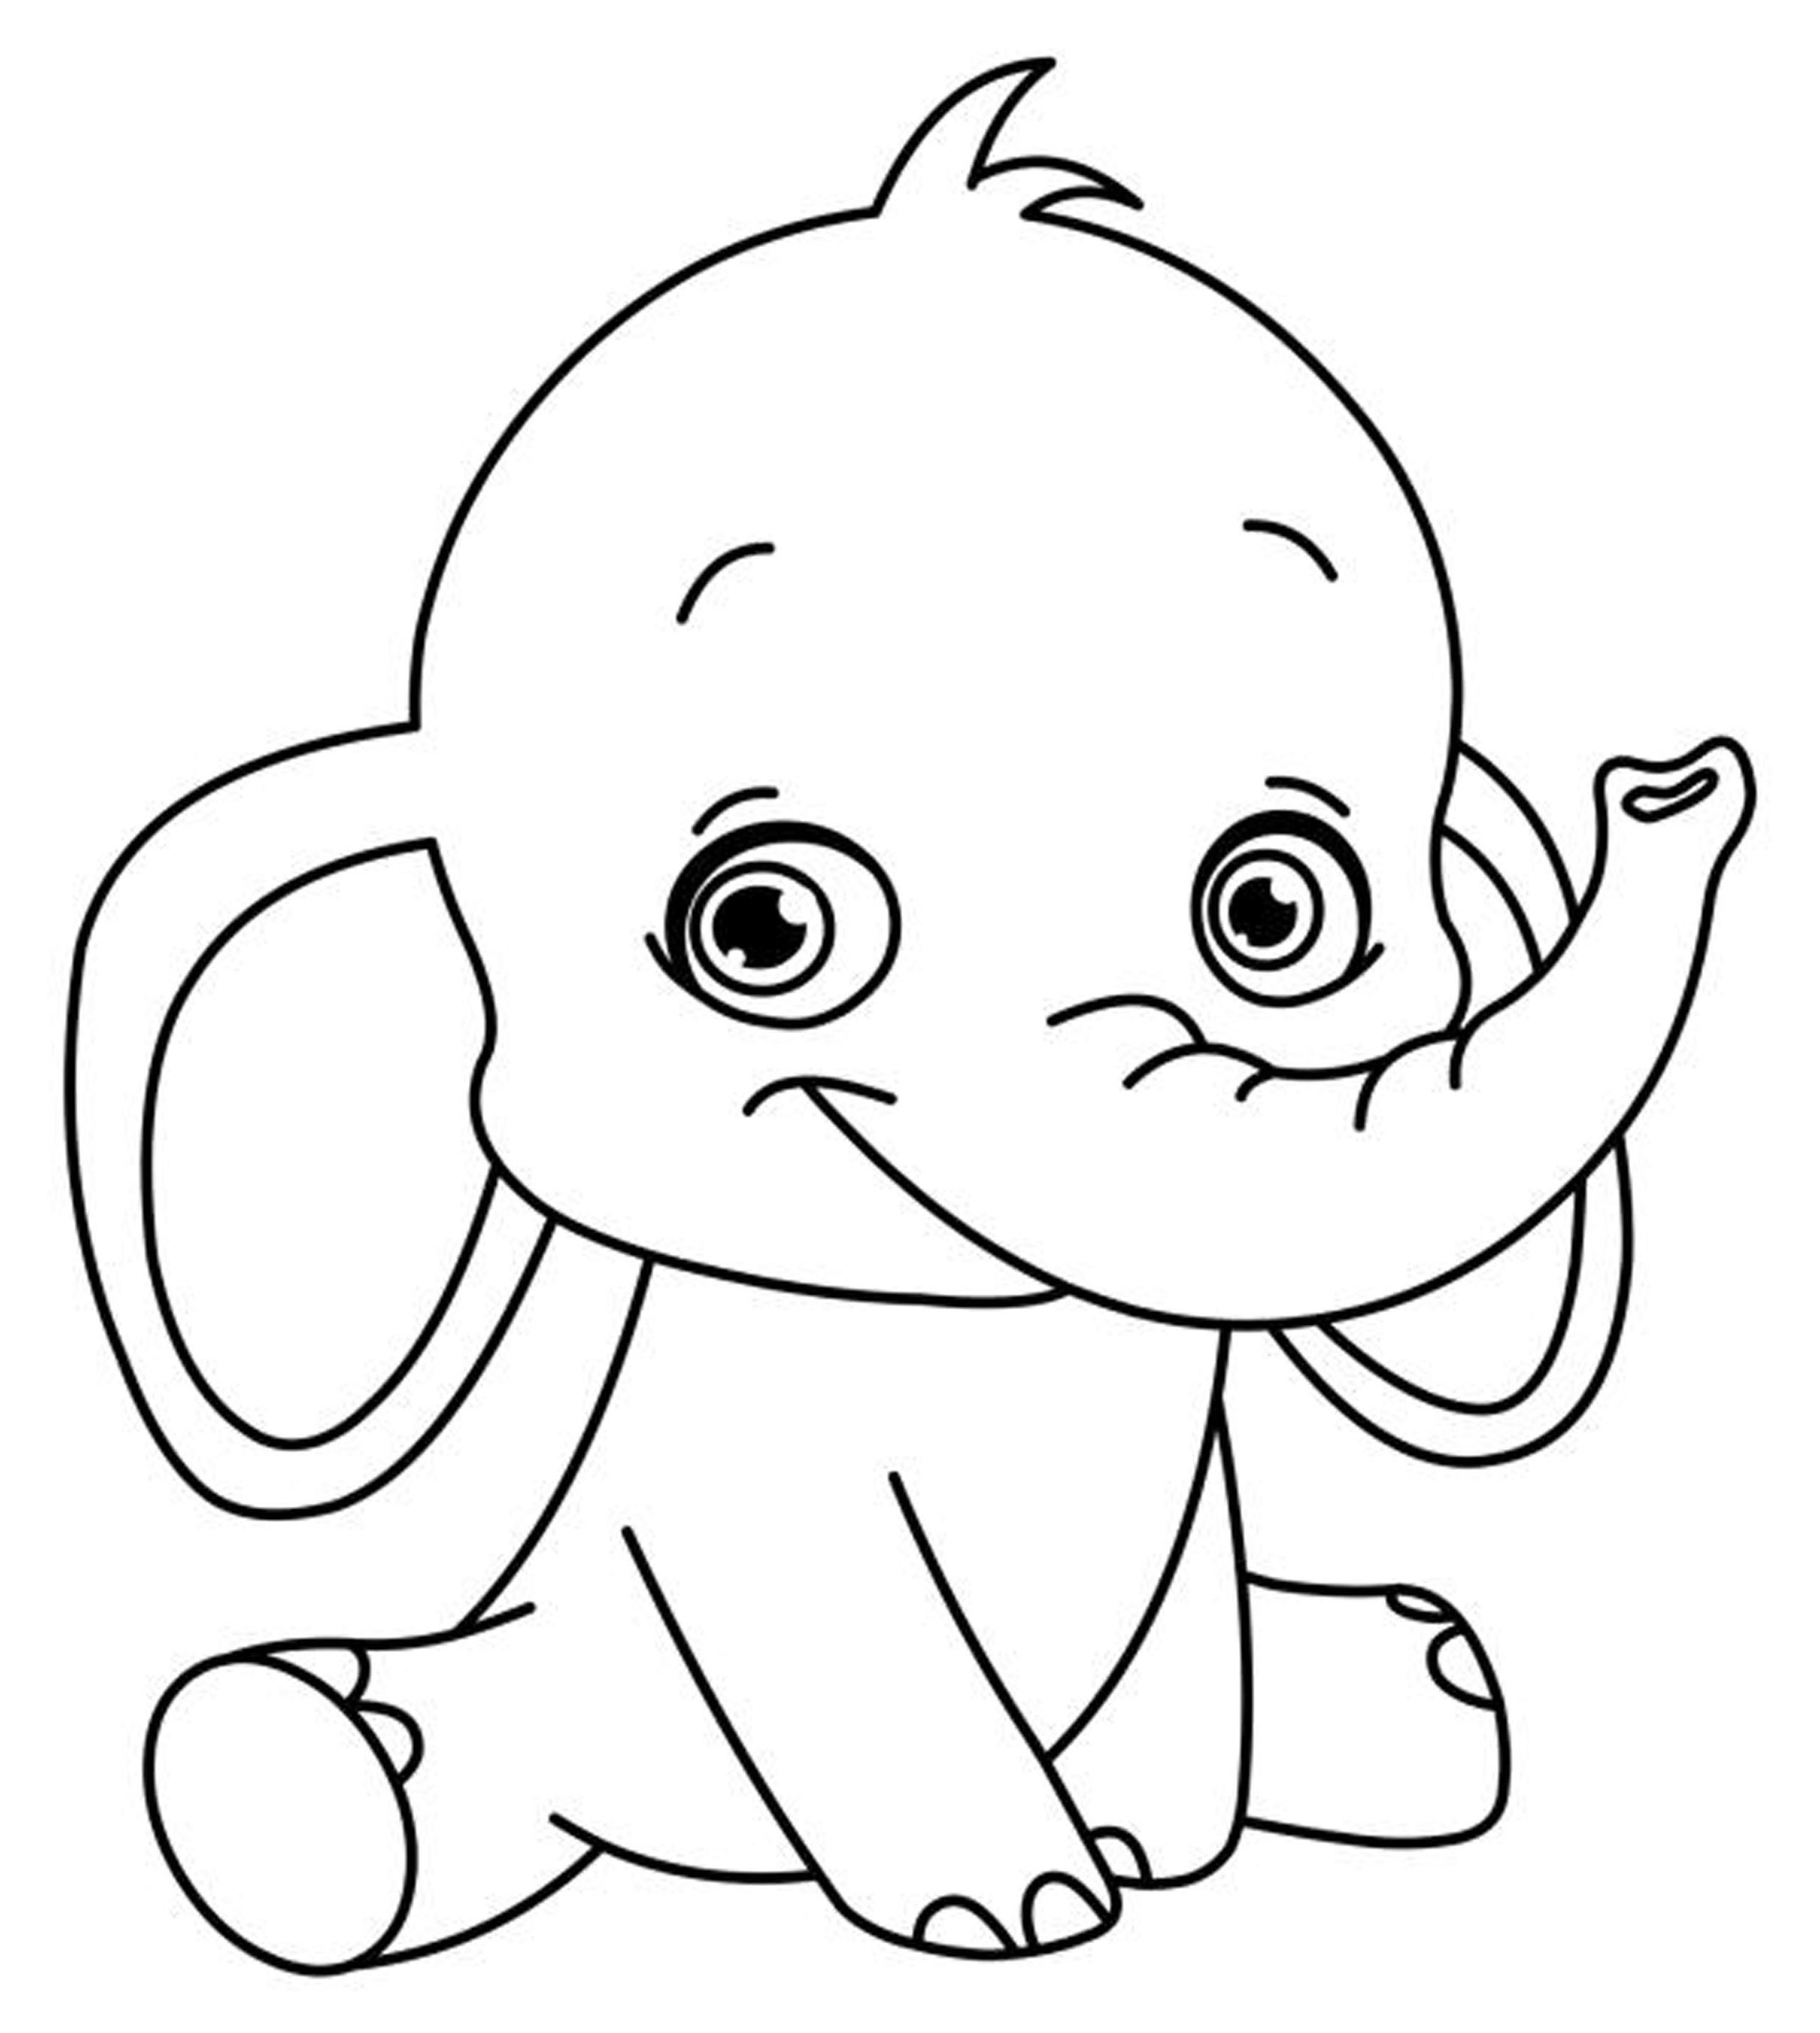 free printable coloring pages for toddlers - printable coloring pages toddlers